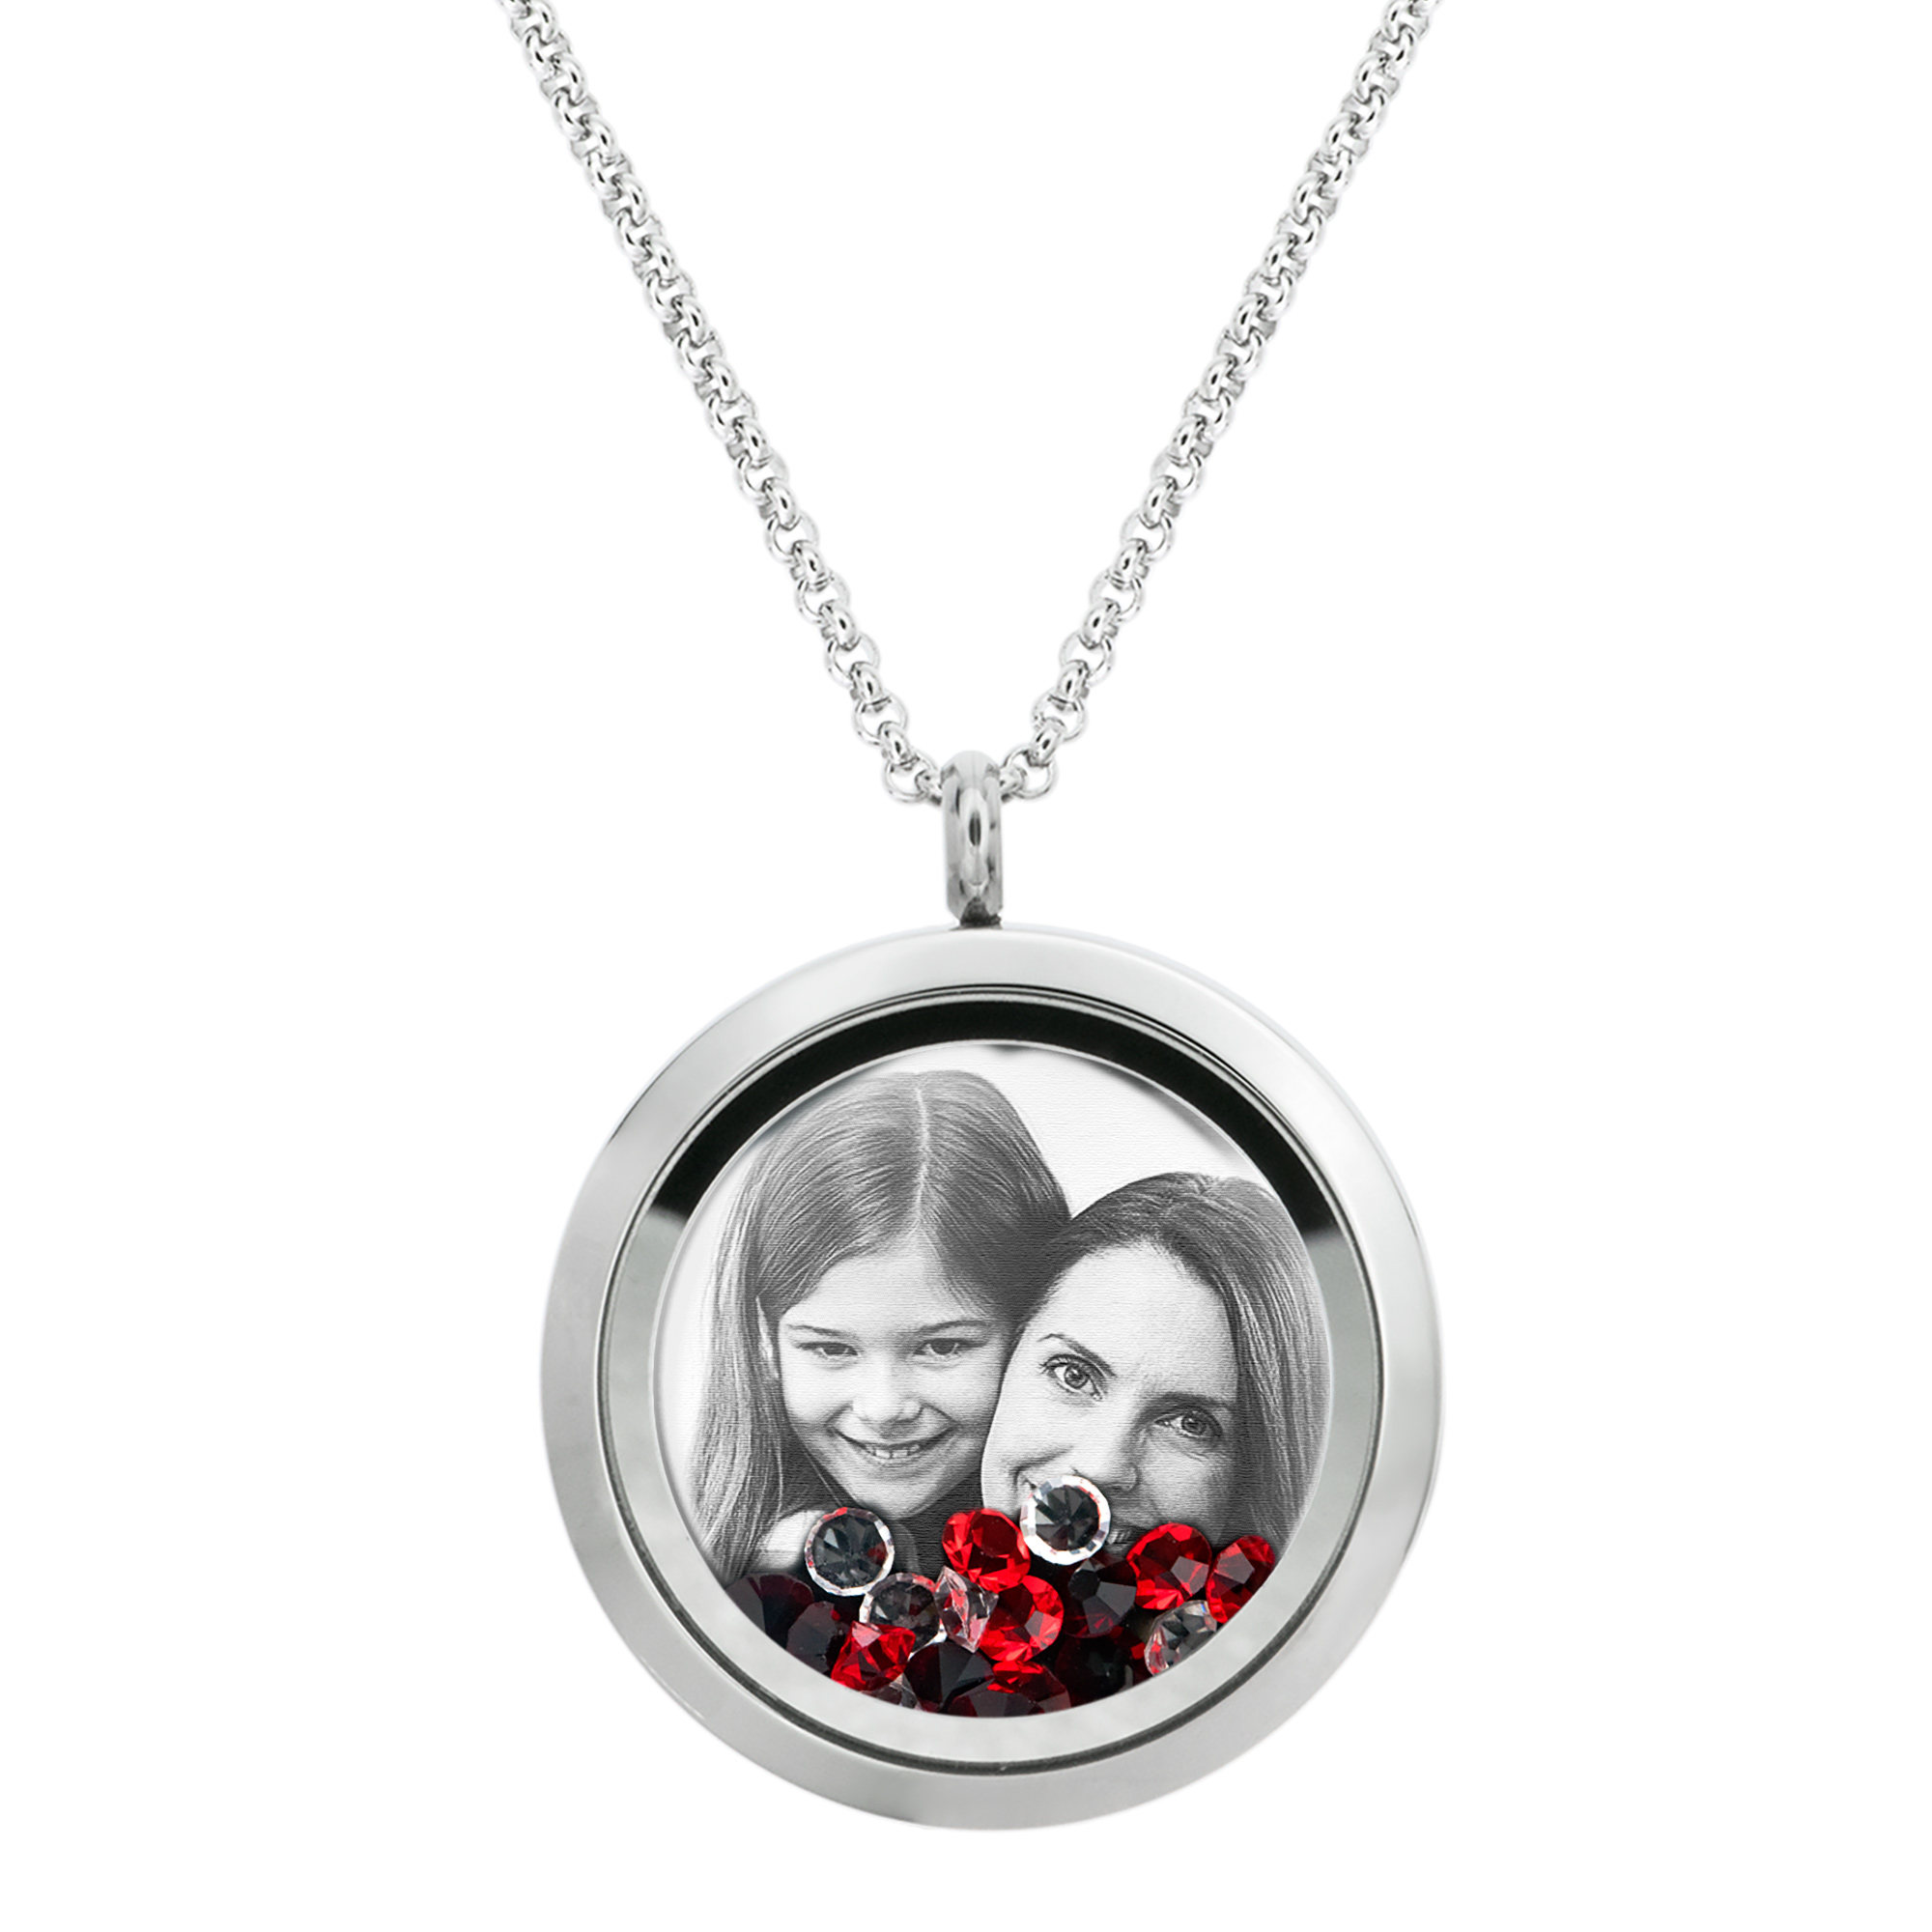 Best Mom Mother Stainless Steel Laser Engraved Personalized Photo & Text Message Floating Locket Crystals Necklace Pendant Red